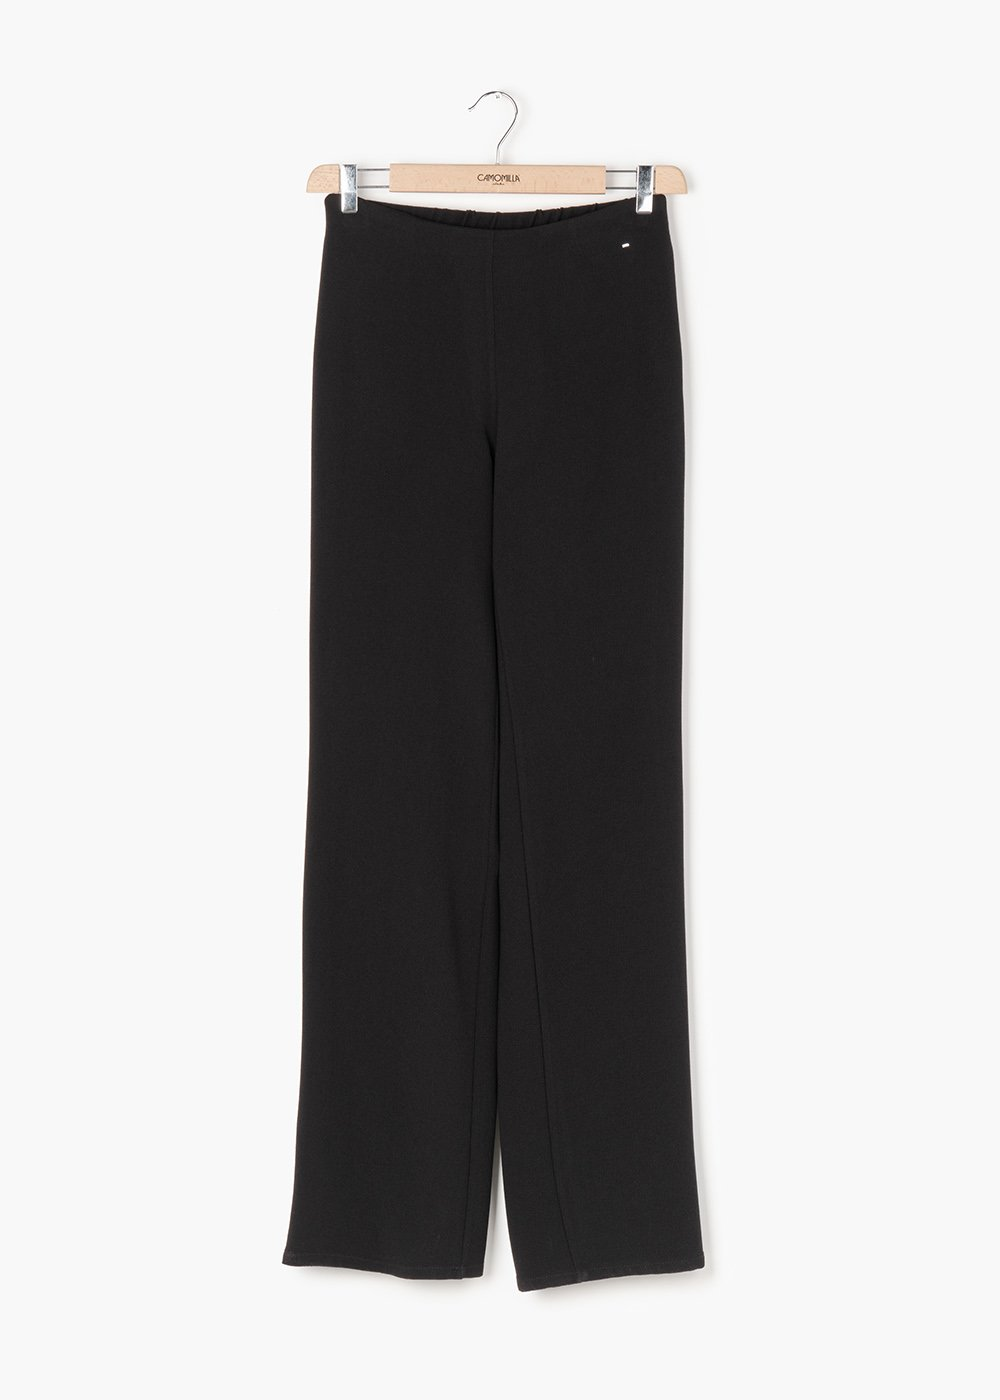 Ashley pants in crepe fabric